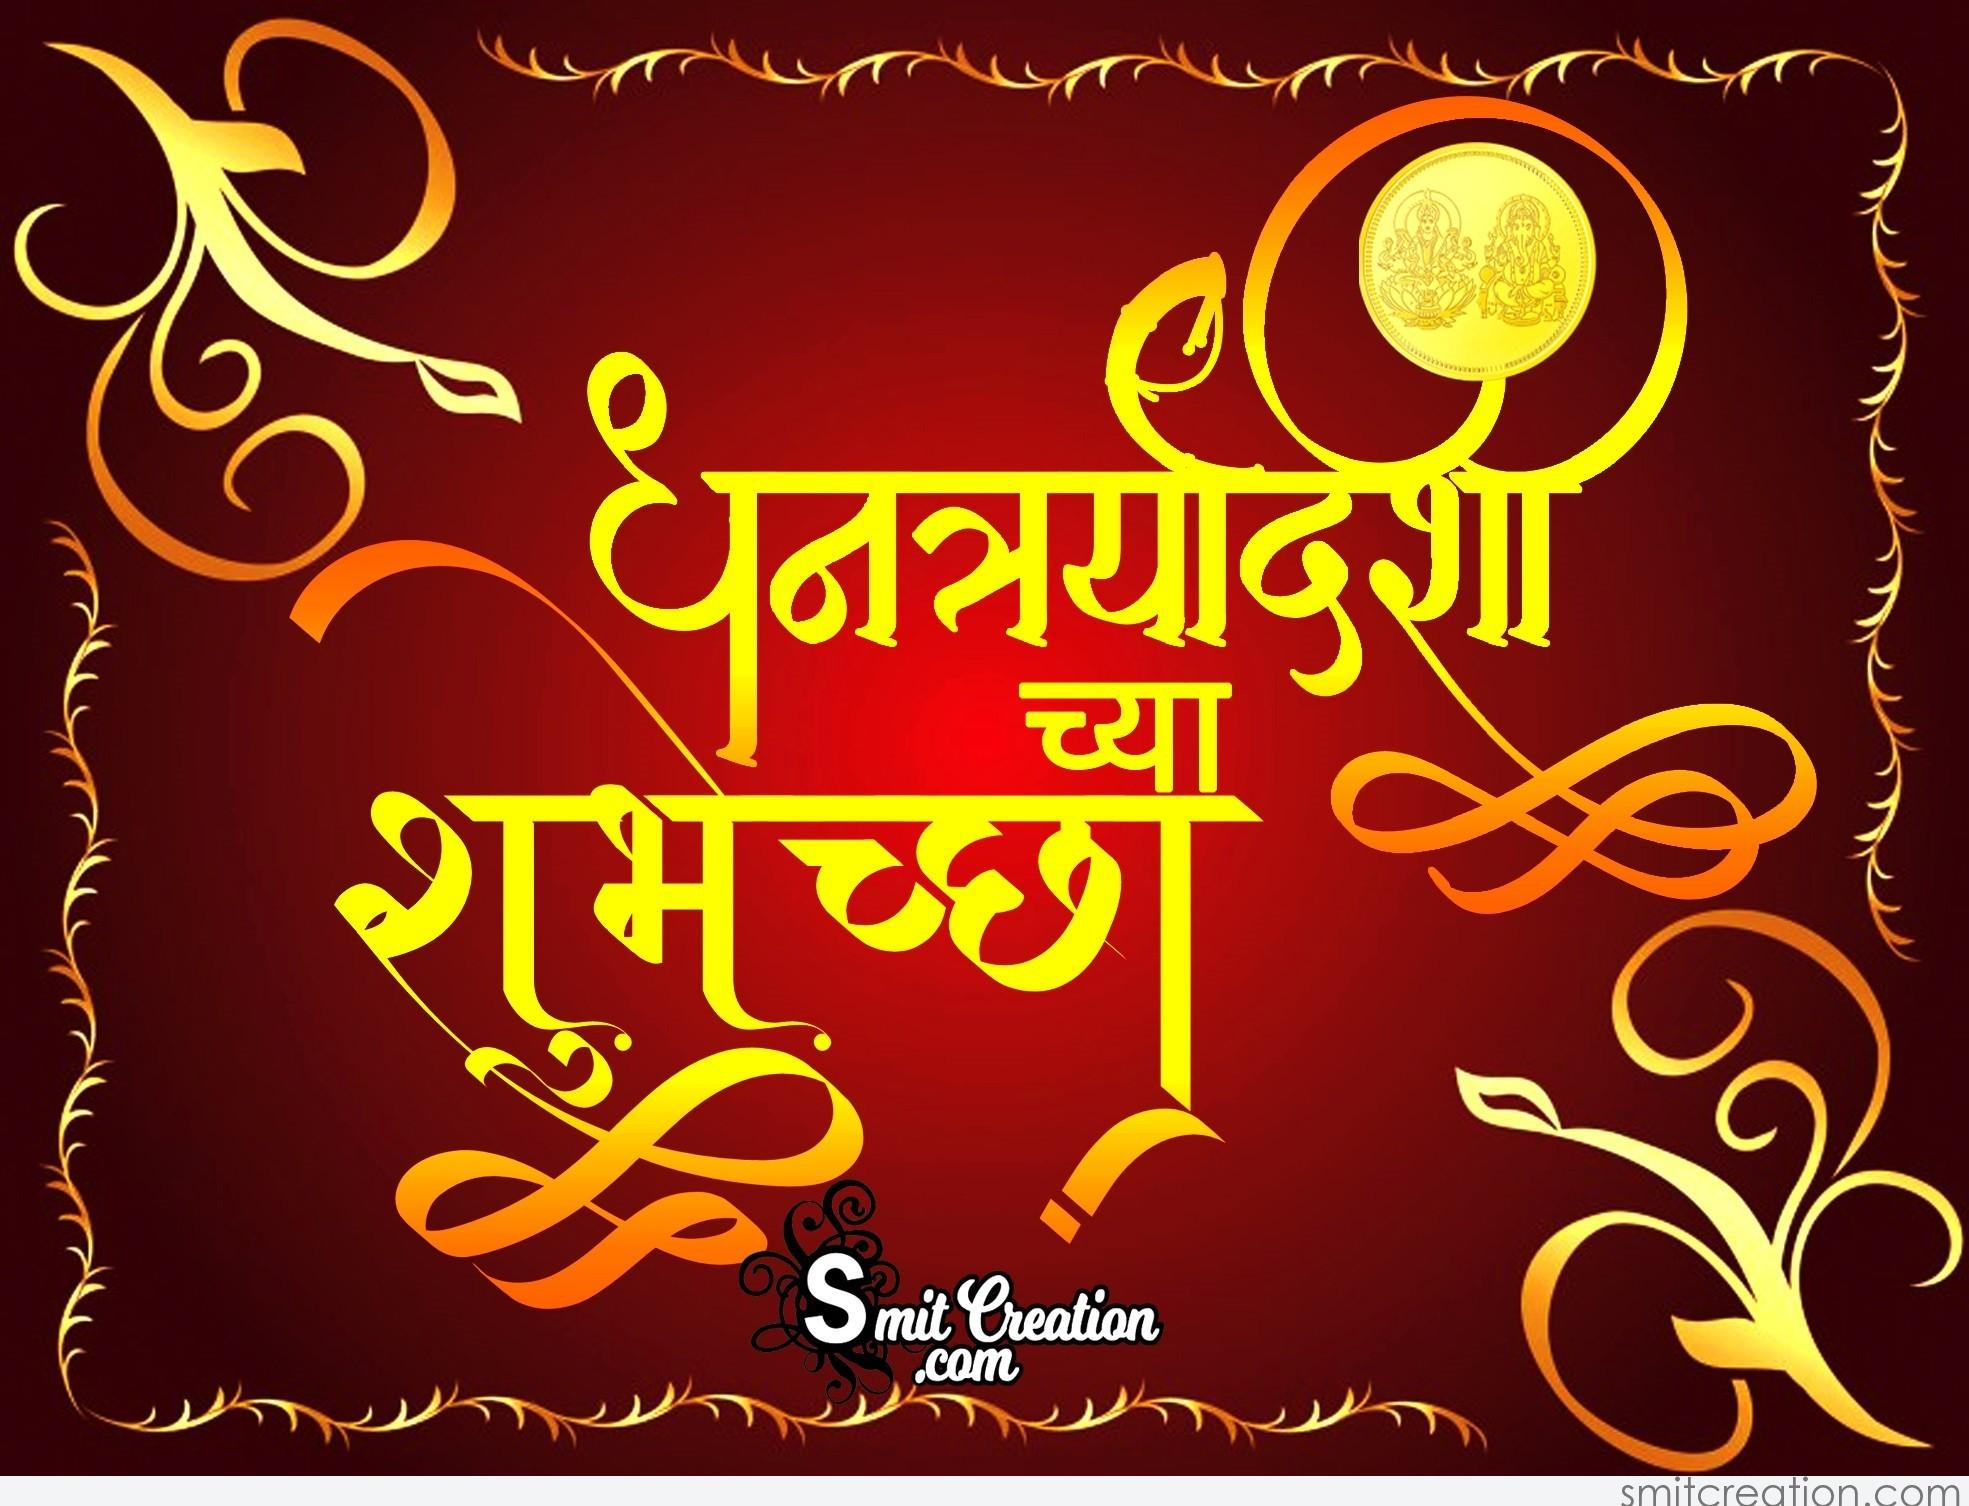 Dhanteras pics in marathi for whatsapp